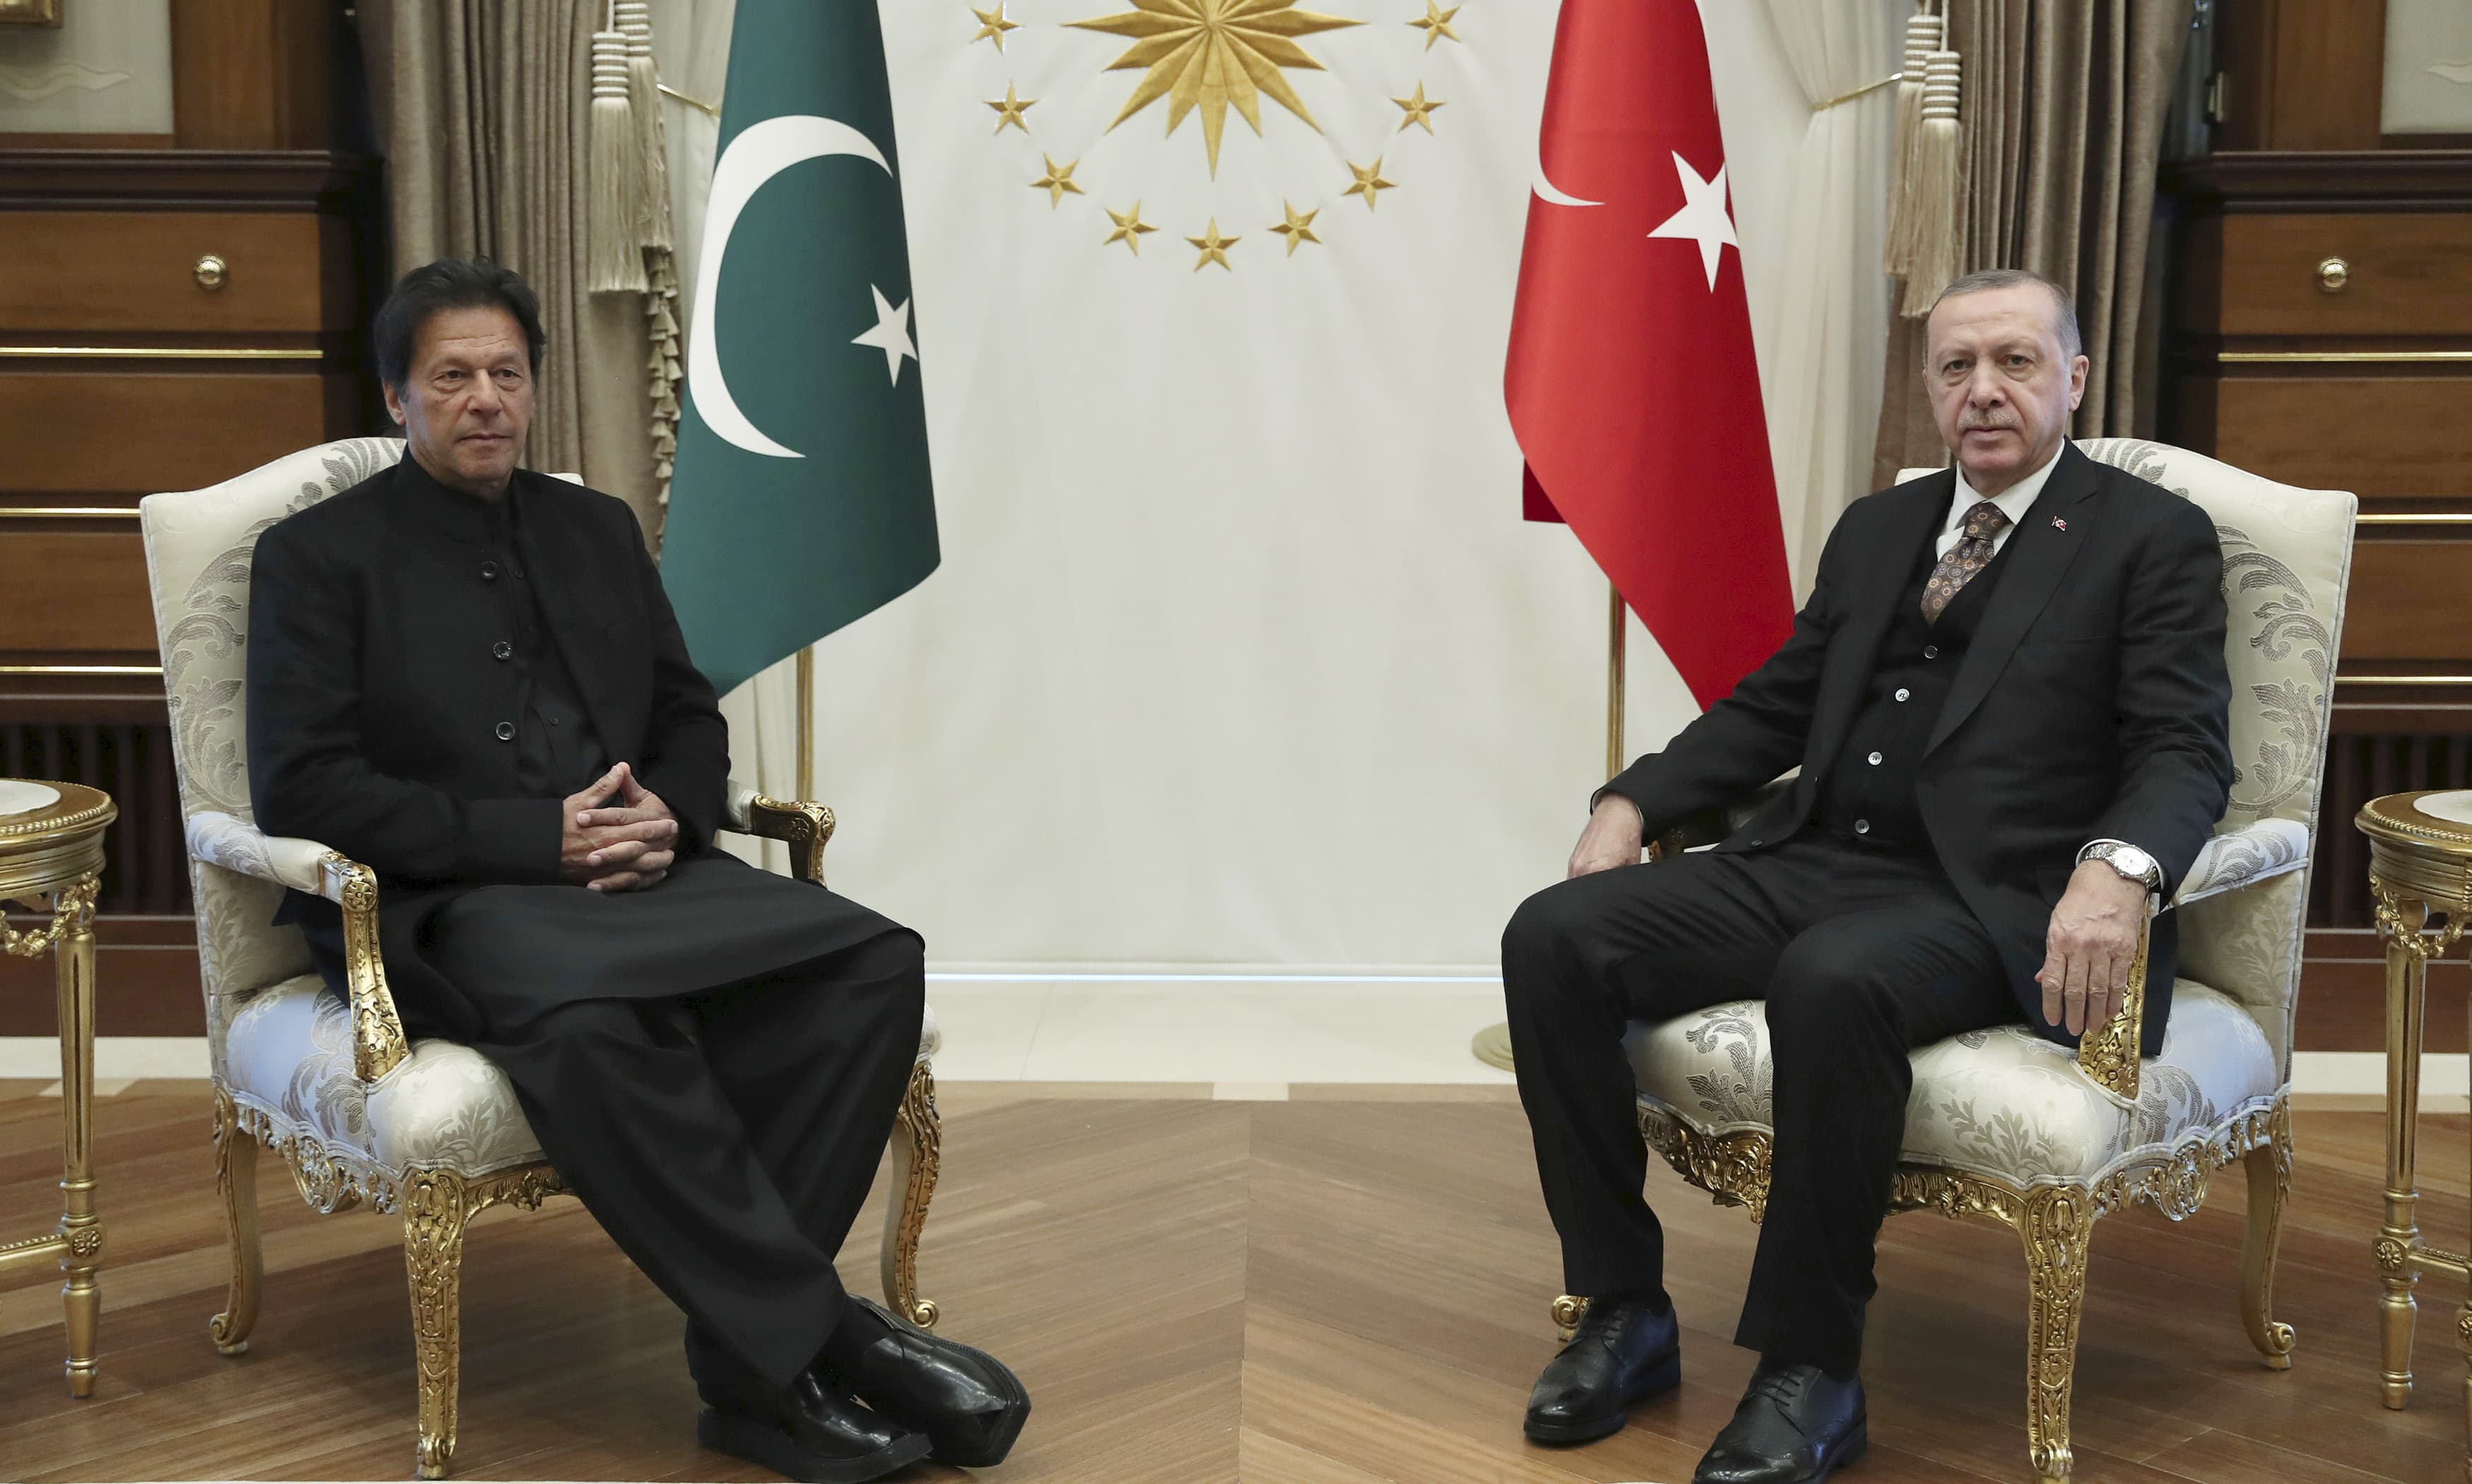 Turkey's President Recep Tayyip Erdogan and PM Imran Khan pose for the media before a meeting in Ankara. —AP